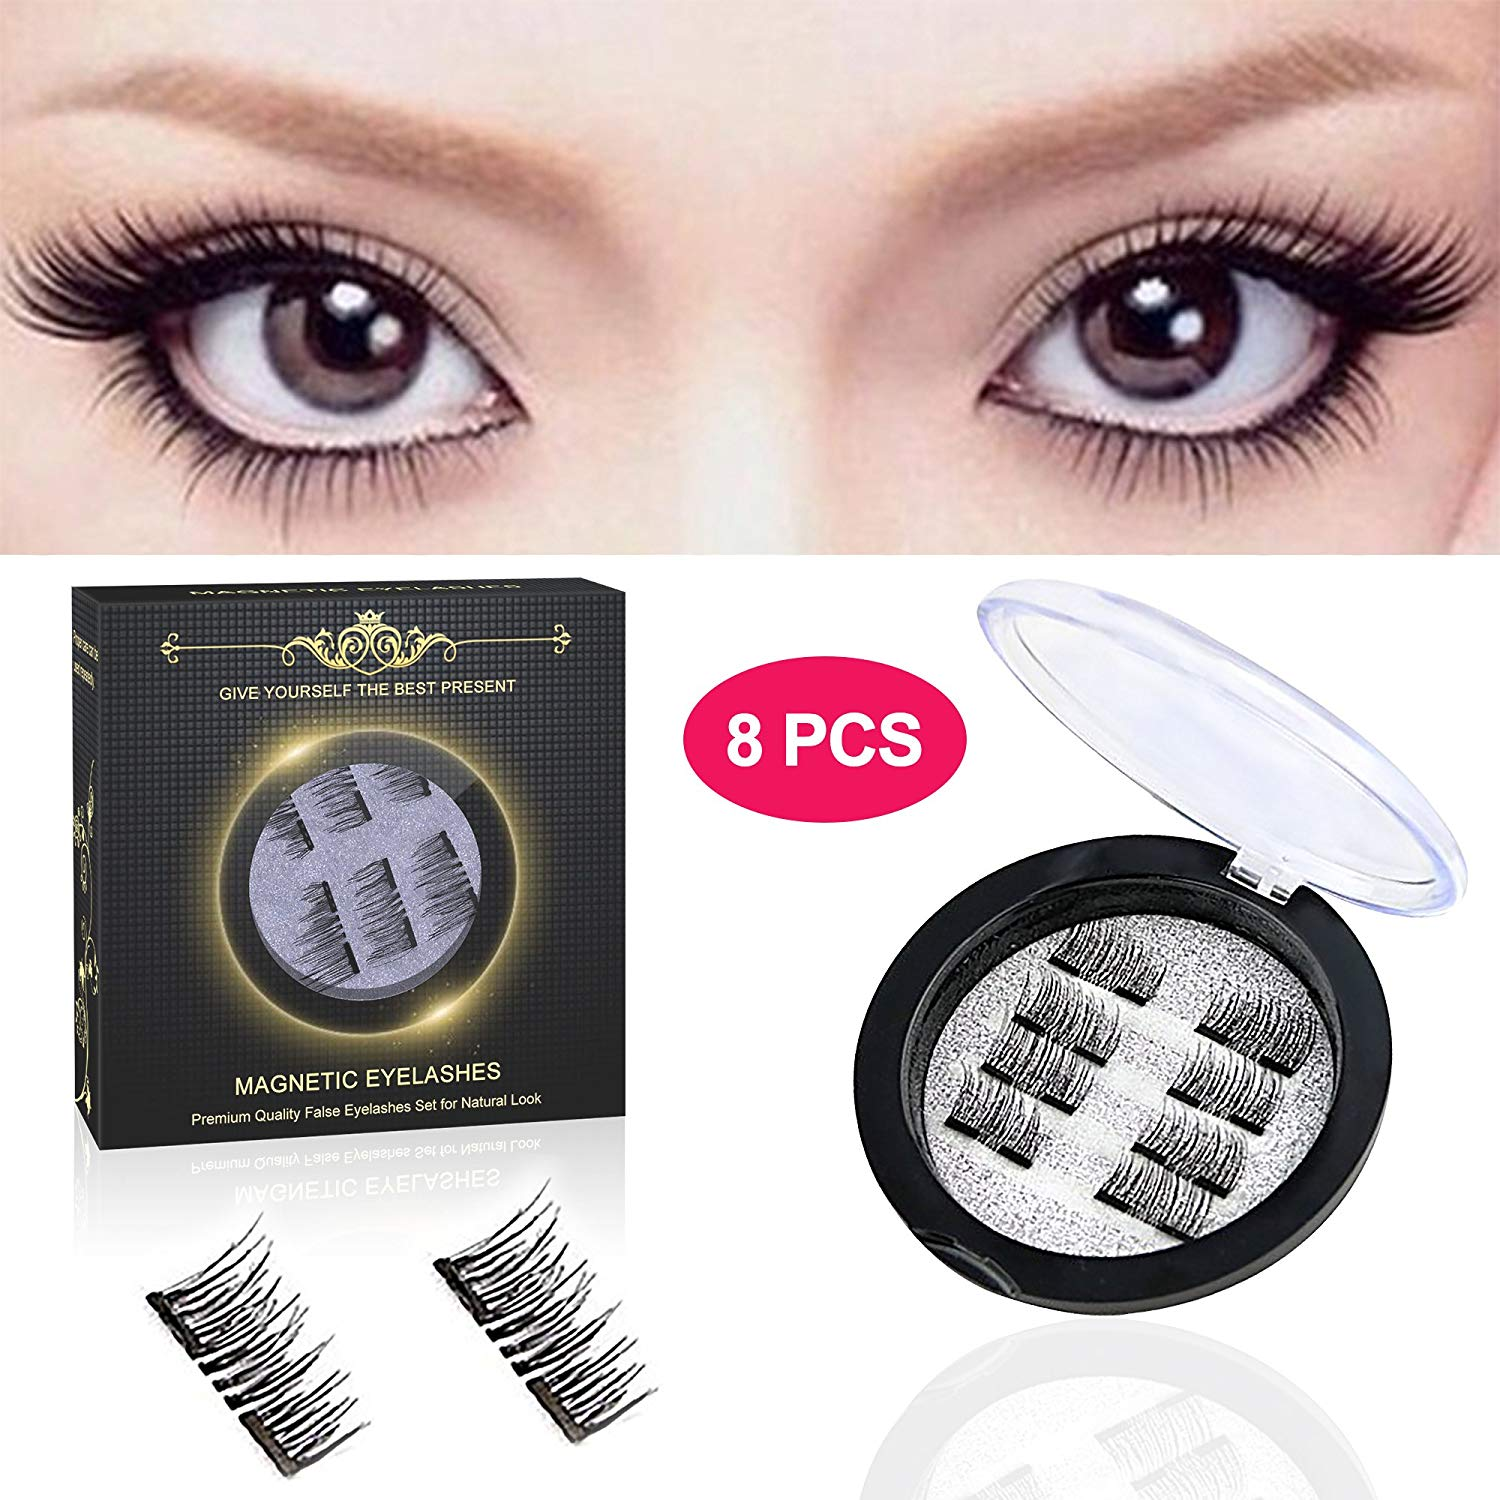 22379d64280 Get Quotations · Magnetic Eyelashes -Pack of 8 pcs, Magnetic False  Eyelashes for Women, False Eyelashes